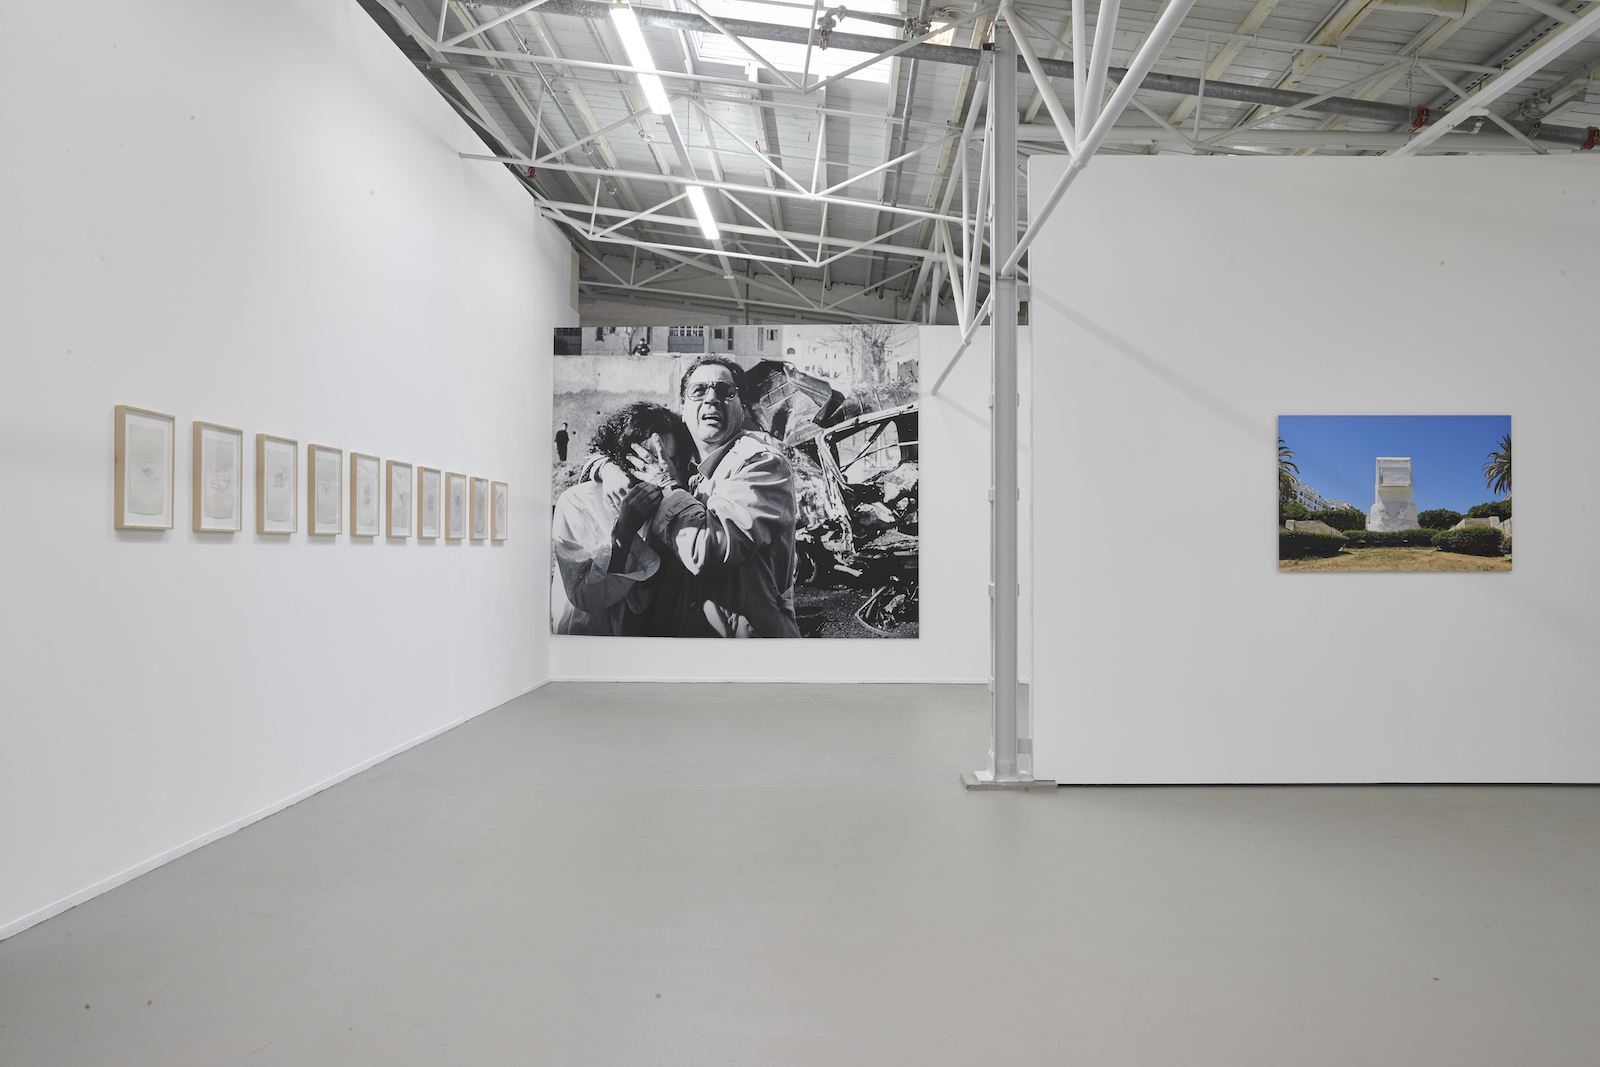 Katia Kameli: She Rekindled the Vividness of the Past, 2019 Installationsansicht Kunsthalle Münster | Installation view Kunsthalle Münster | Courtesy the artist Foto: Volker Renner | Photo: Volker Renner